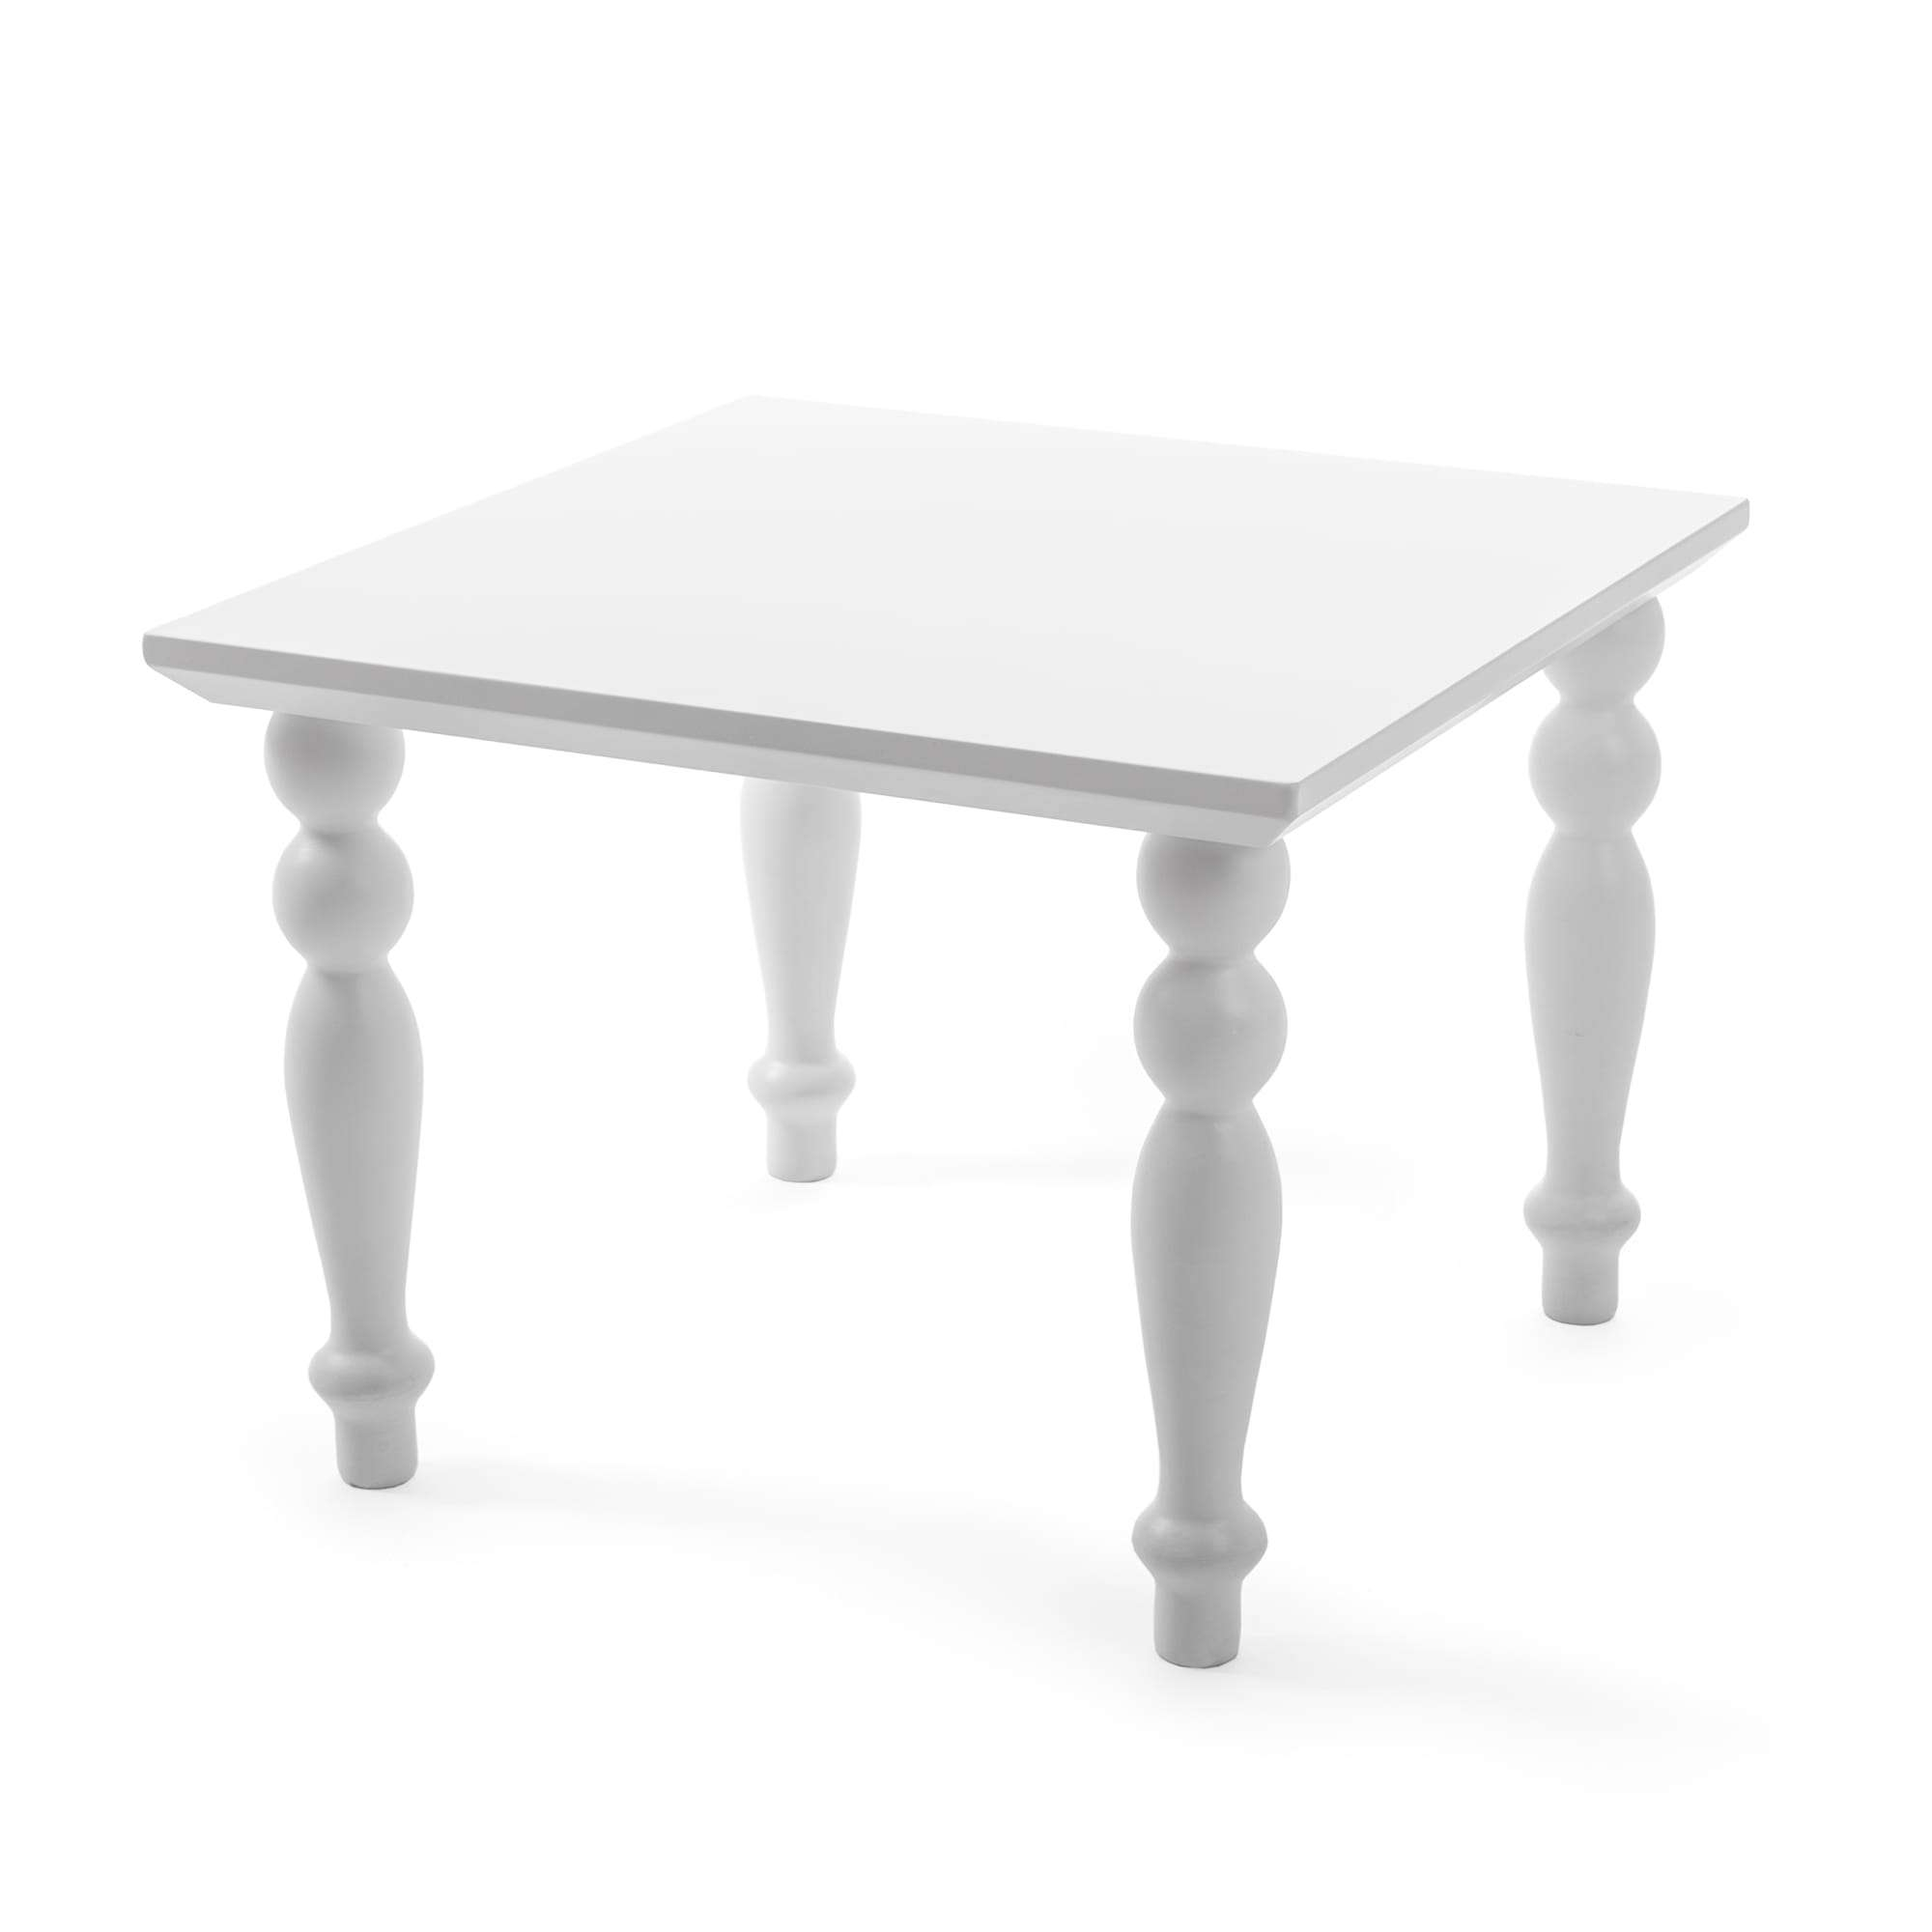 Coffee Table Square White – Seletti In 2017 Heritage Coffee Tables (View 5 of 20)